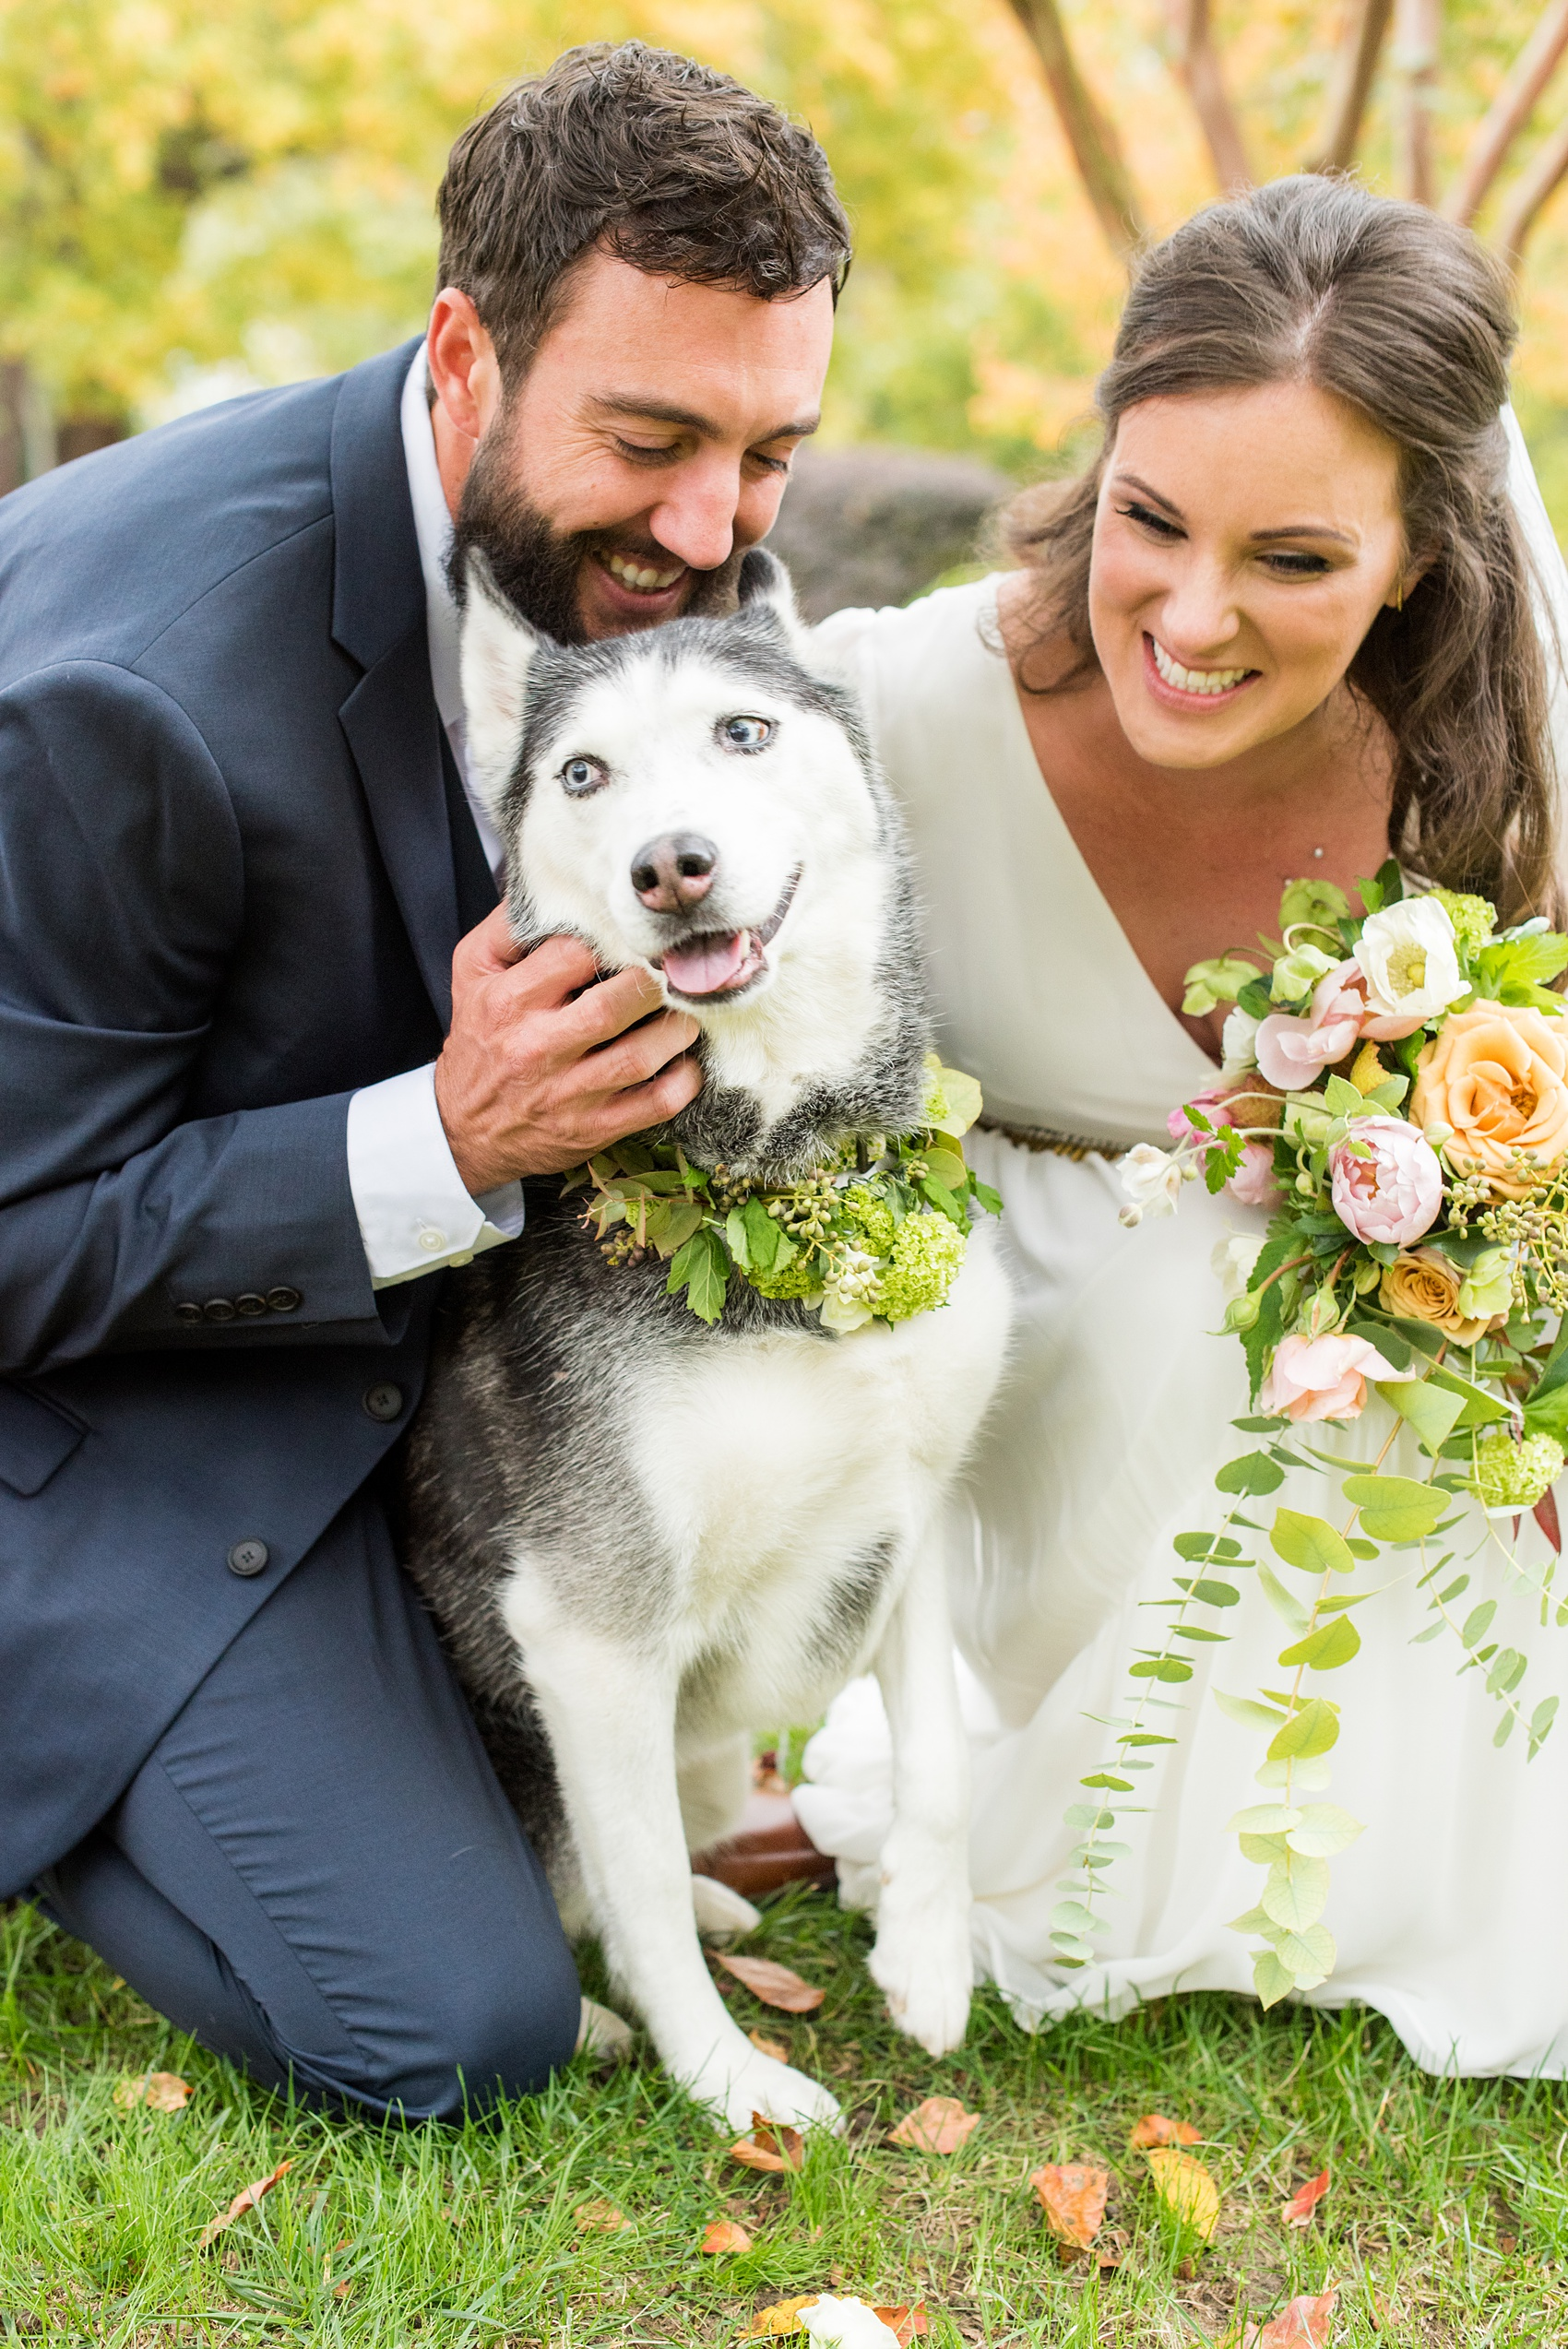 Mikkel Paige Photography photos from a wedding at Leslie-Alford Mims House in North Carolina. Picture of the bride and groom with their Husky dog in a flower collar.